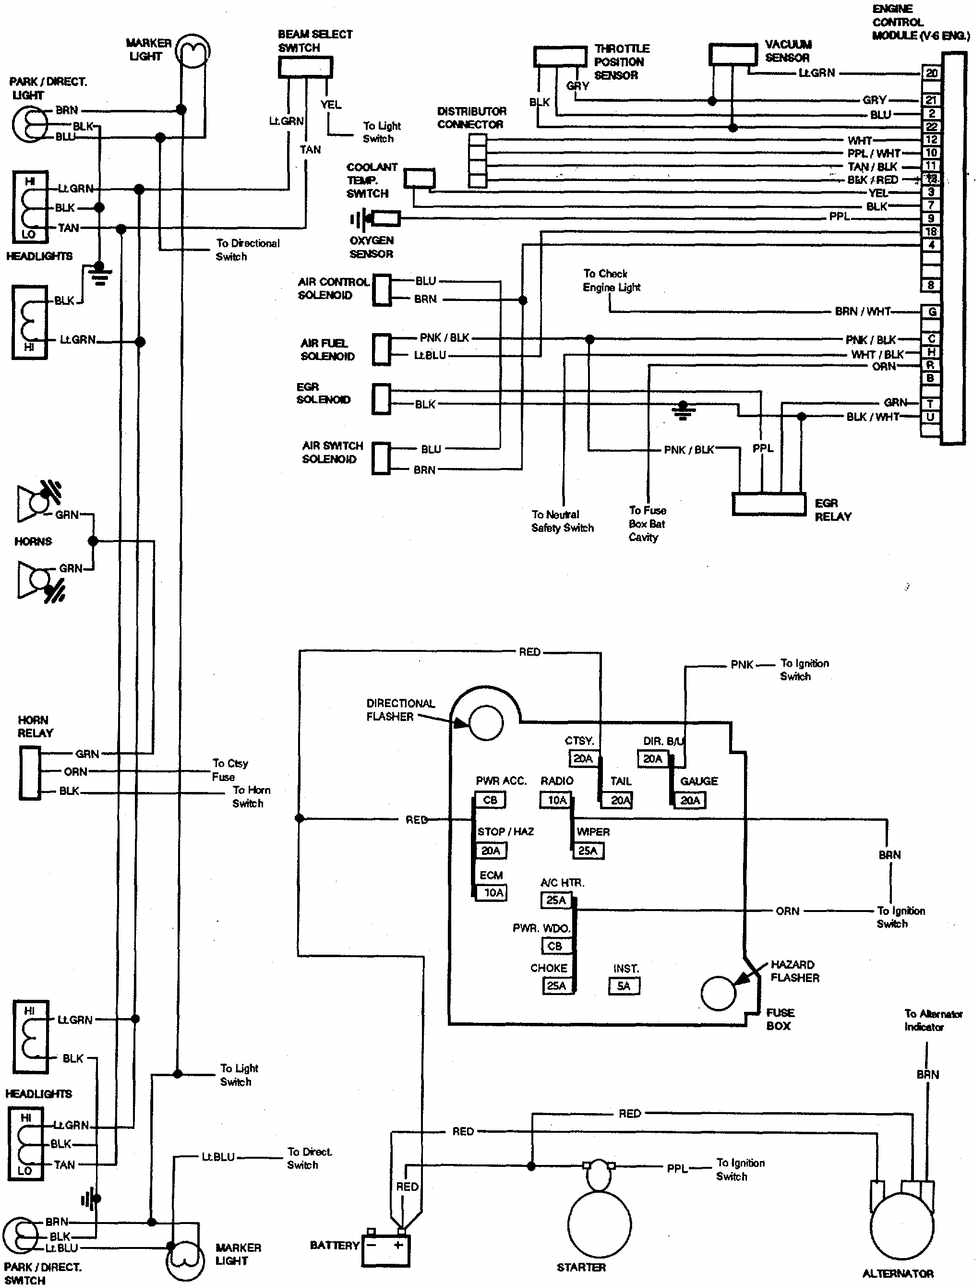 flasher relay wiring diagram flasher discover your wiring chevrolet v8 trucks 1981 1987 gmc yukon turn signal relay location additionally 1990 chevrolet corvette ignition module wiring diagram besides chevrolet